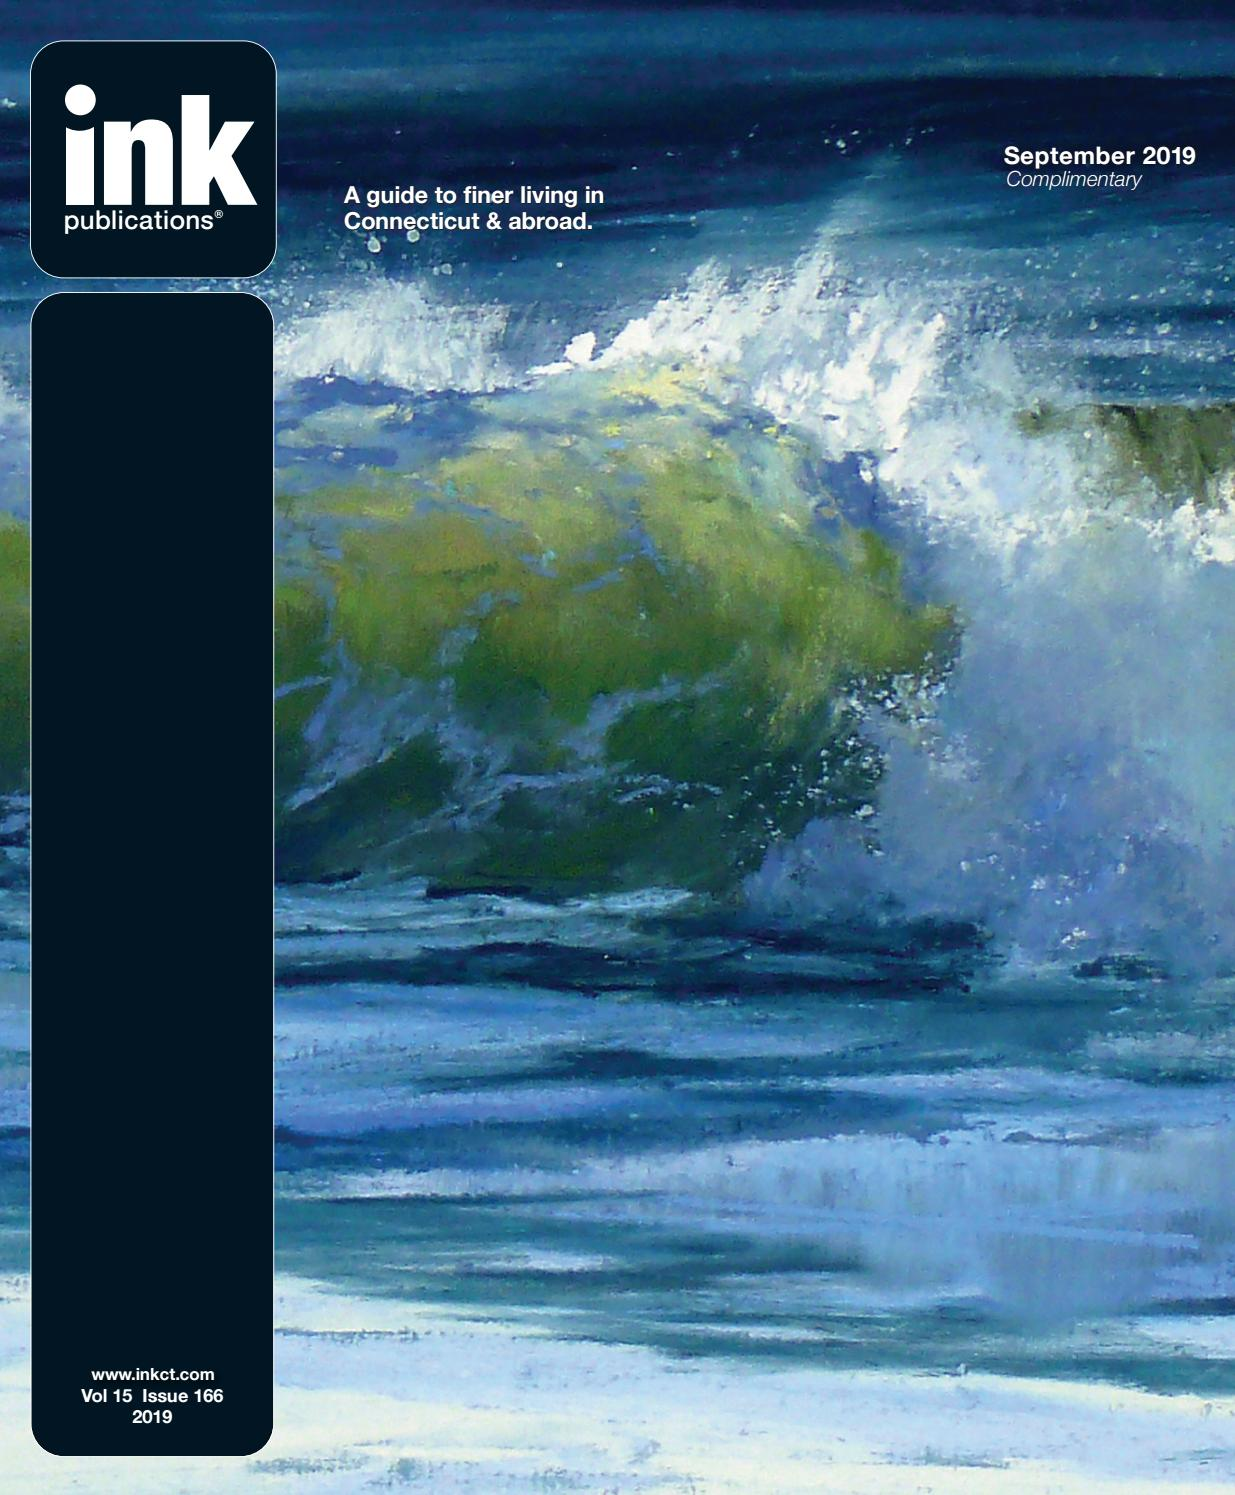 Ink Publications - September 2019 by Ink Publications - issuu